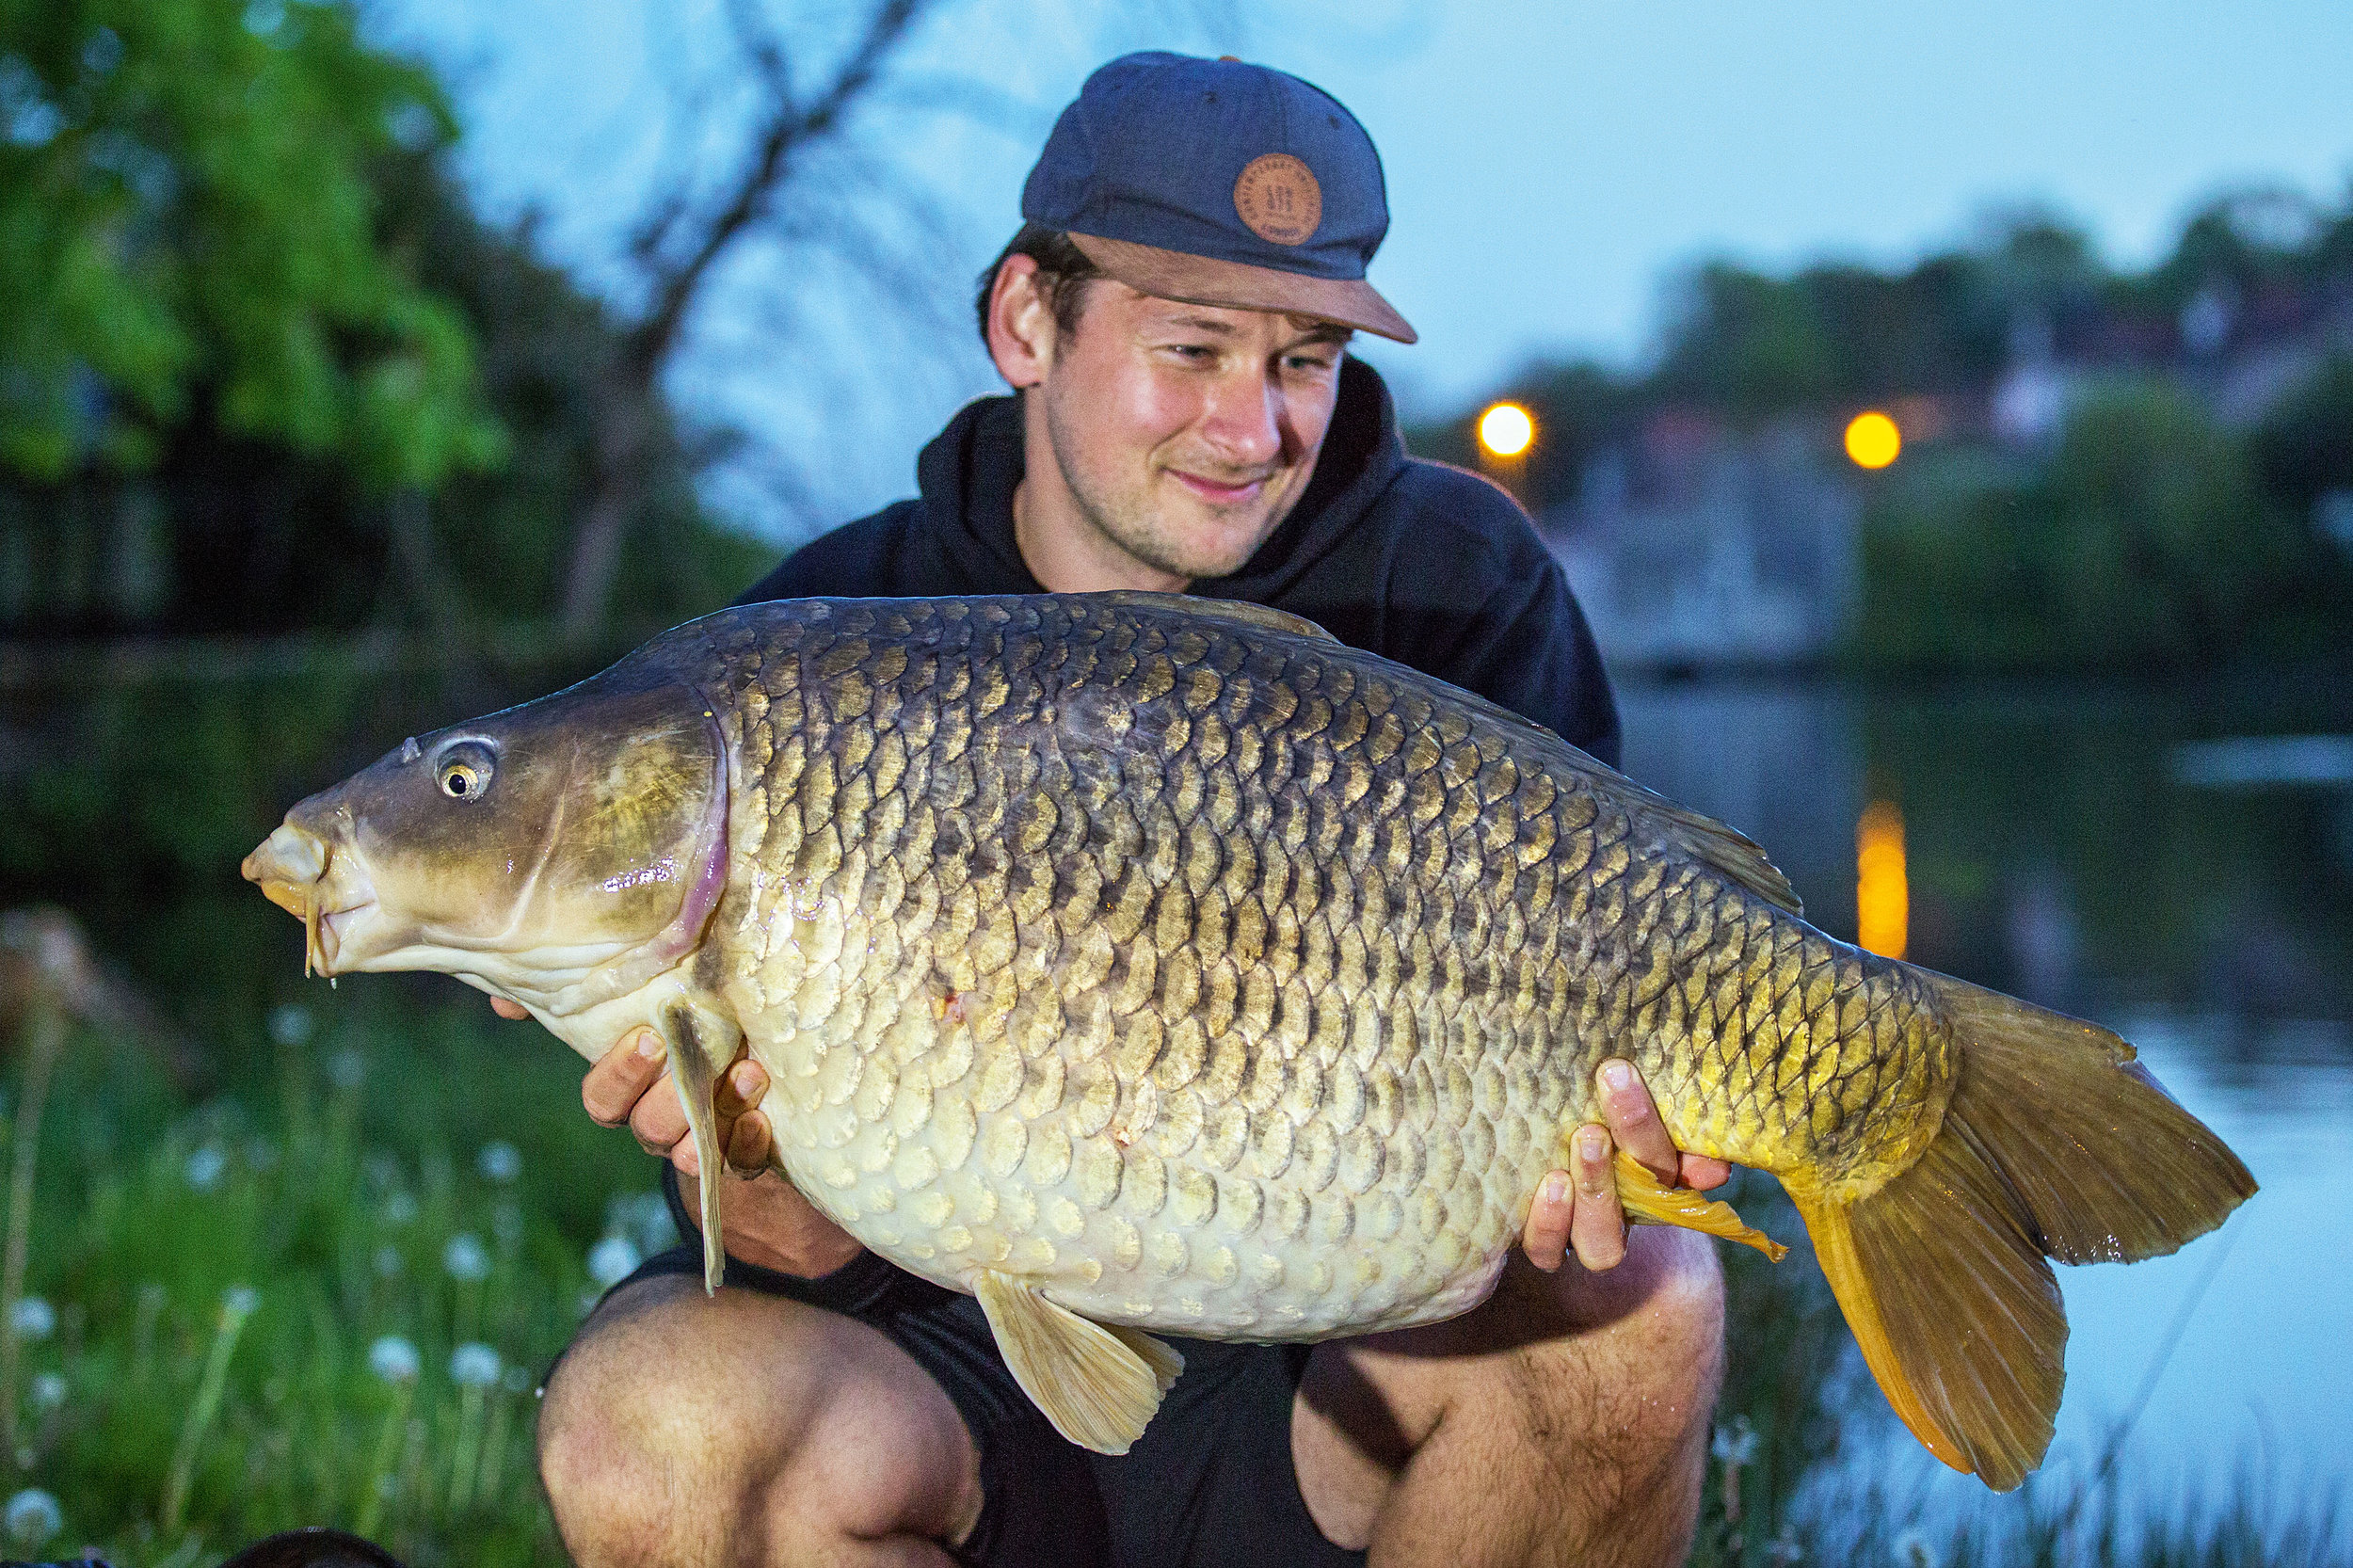 A defining moment in my angling life – words failed me for this upper 40, river-caught, common